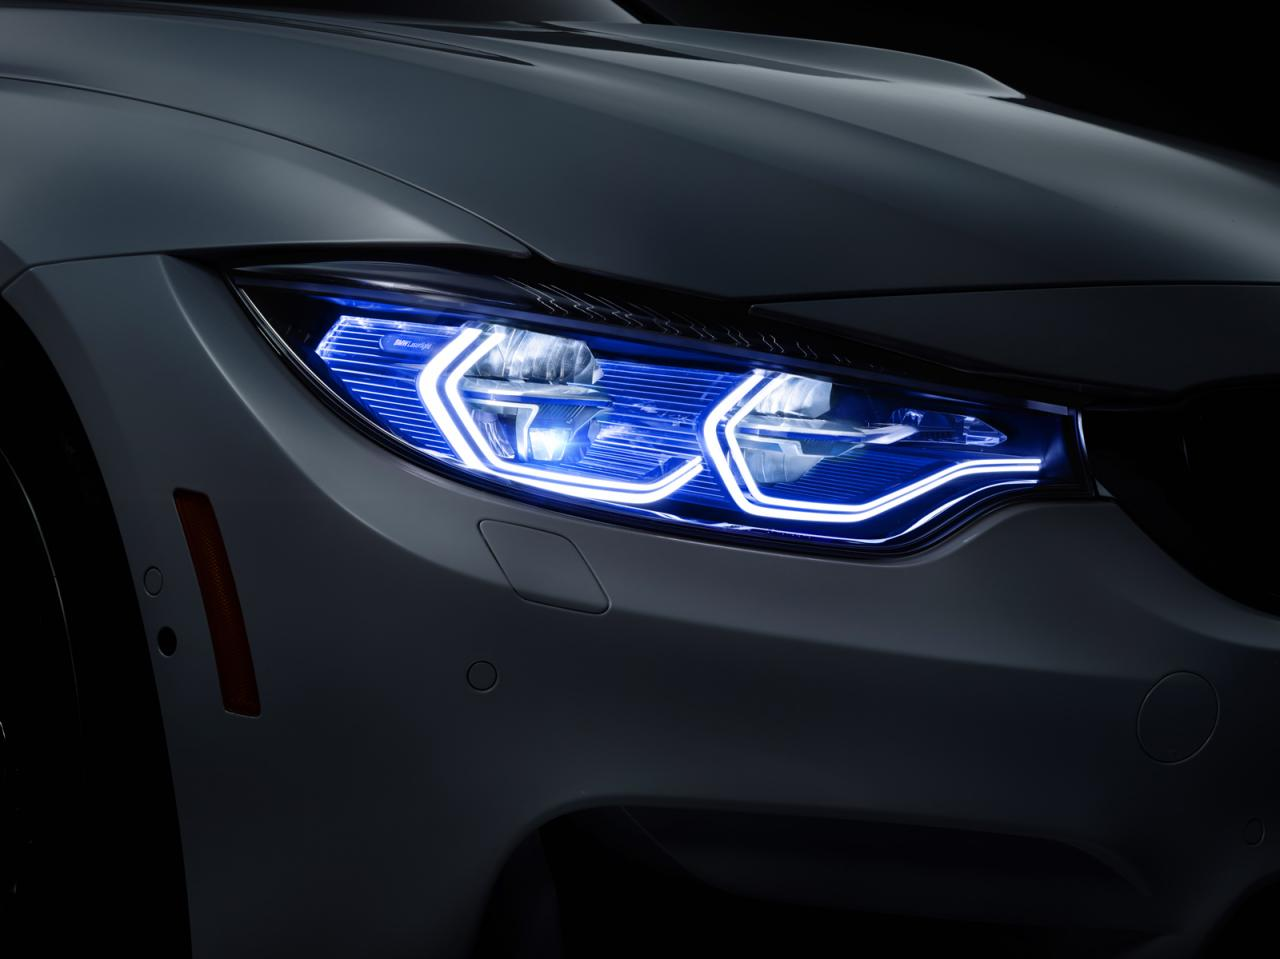 Sport Series bmw laser headlights BMW M4 Concept Iconic Lights shows up in Vegas | BMWCoop